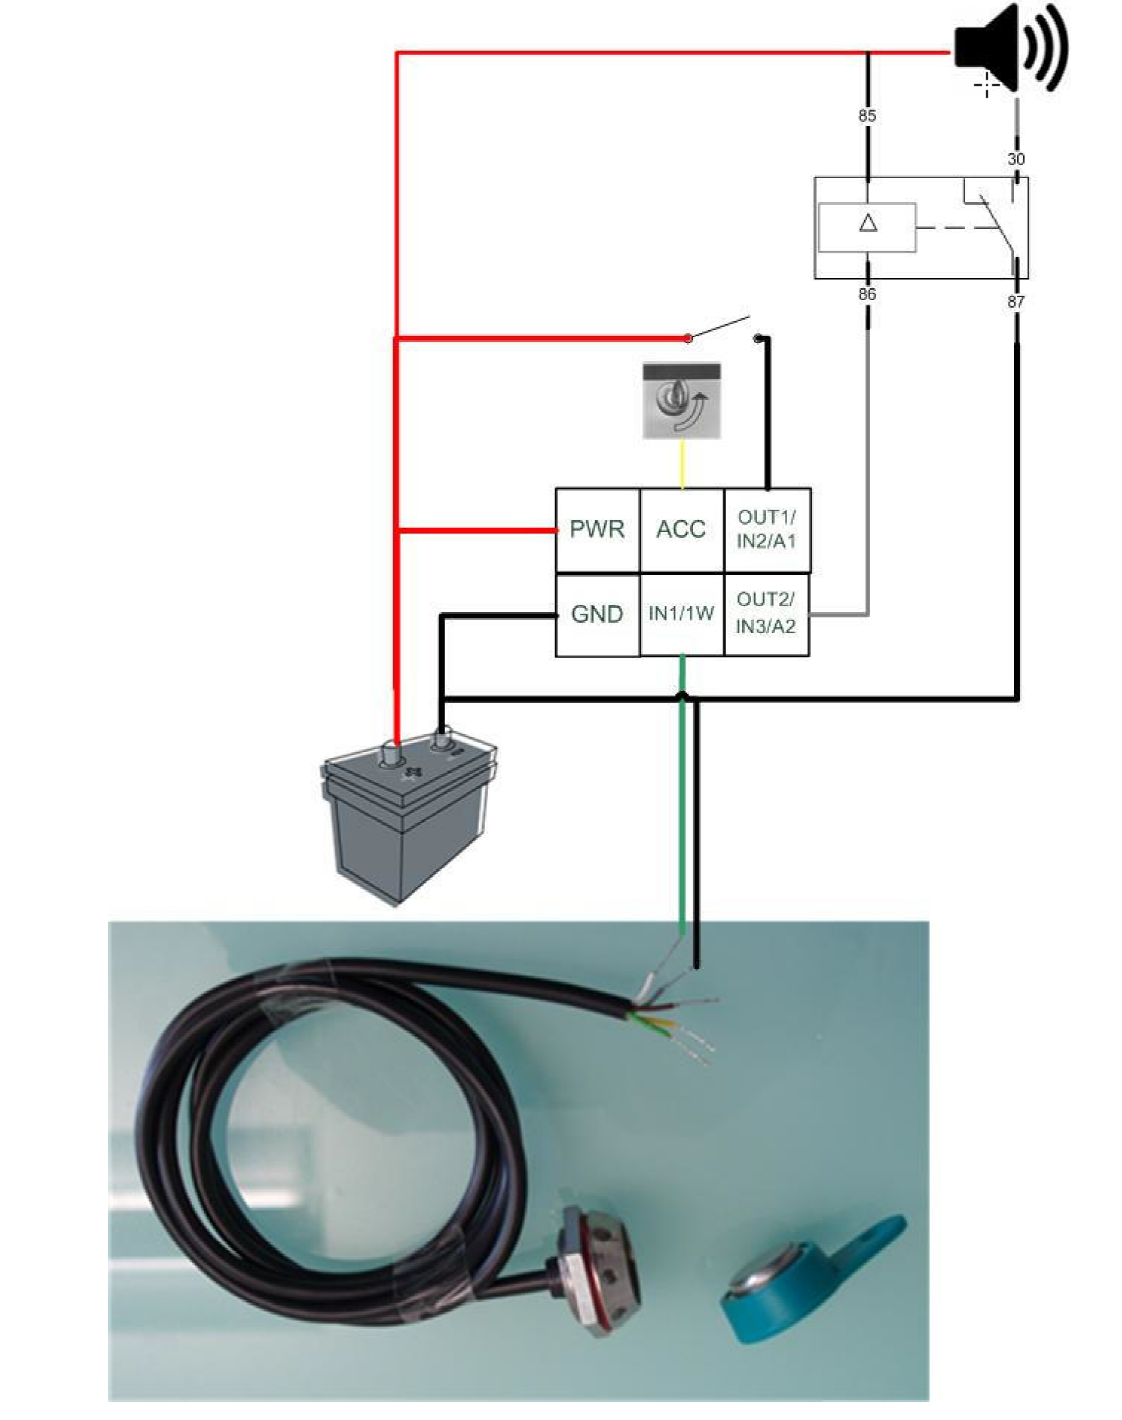 image2015 5 12 14%3A5%3A12?version=1&modificationDate=1431432359069&api=v2 gps dynamic einbauanleitung ak1 Basic Electrical Wiring Diagrams at mifinder.co